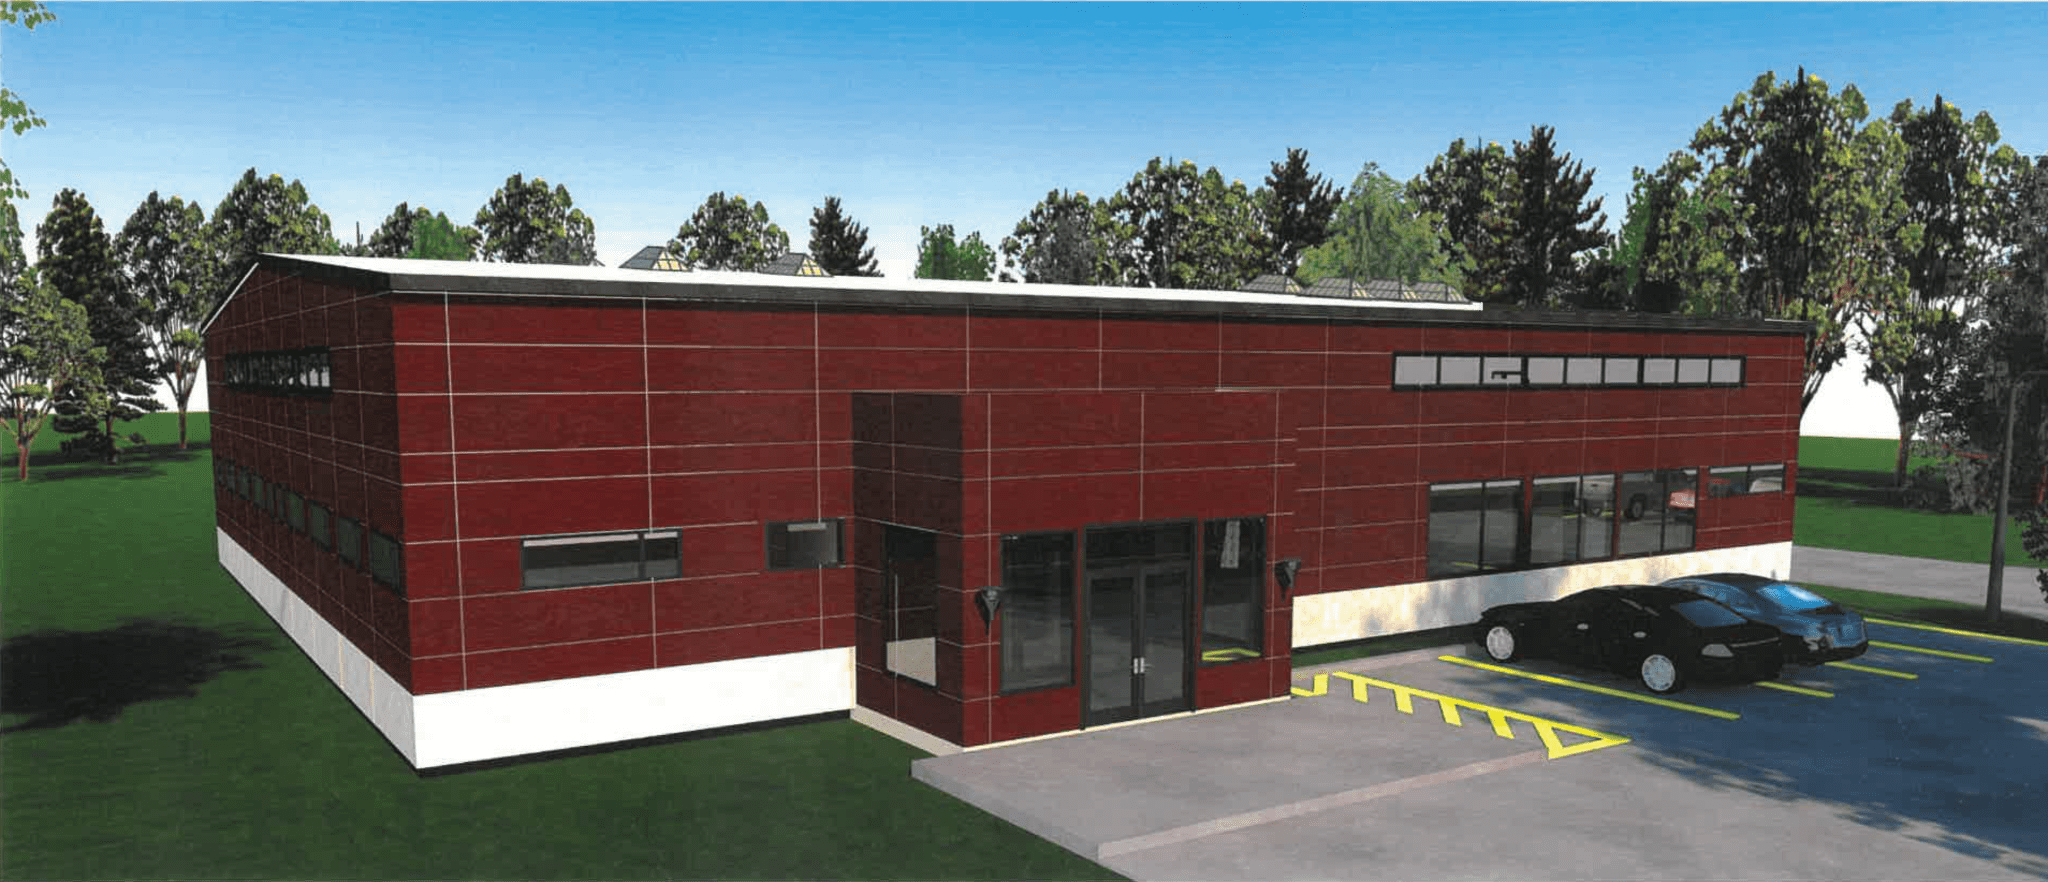 Rendering of the new St. Joseph's facility in Saranac Lake, NY